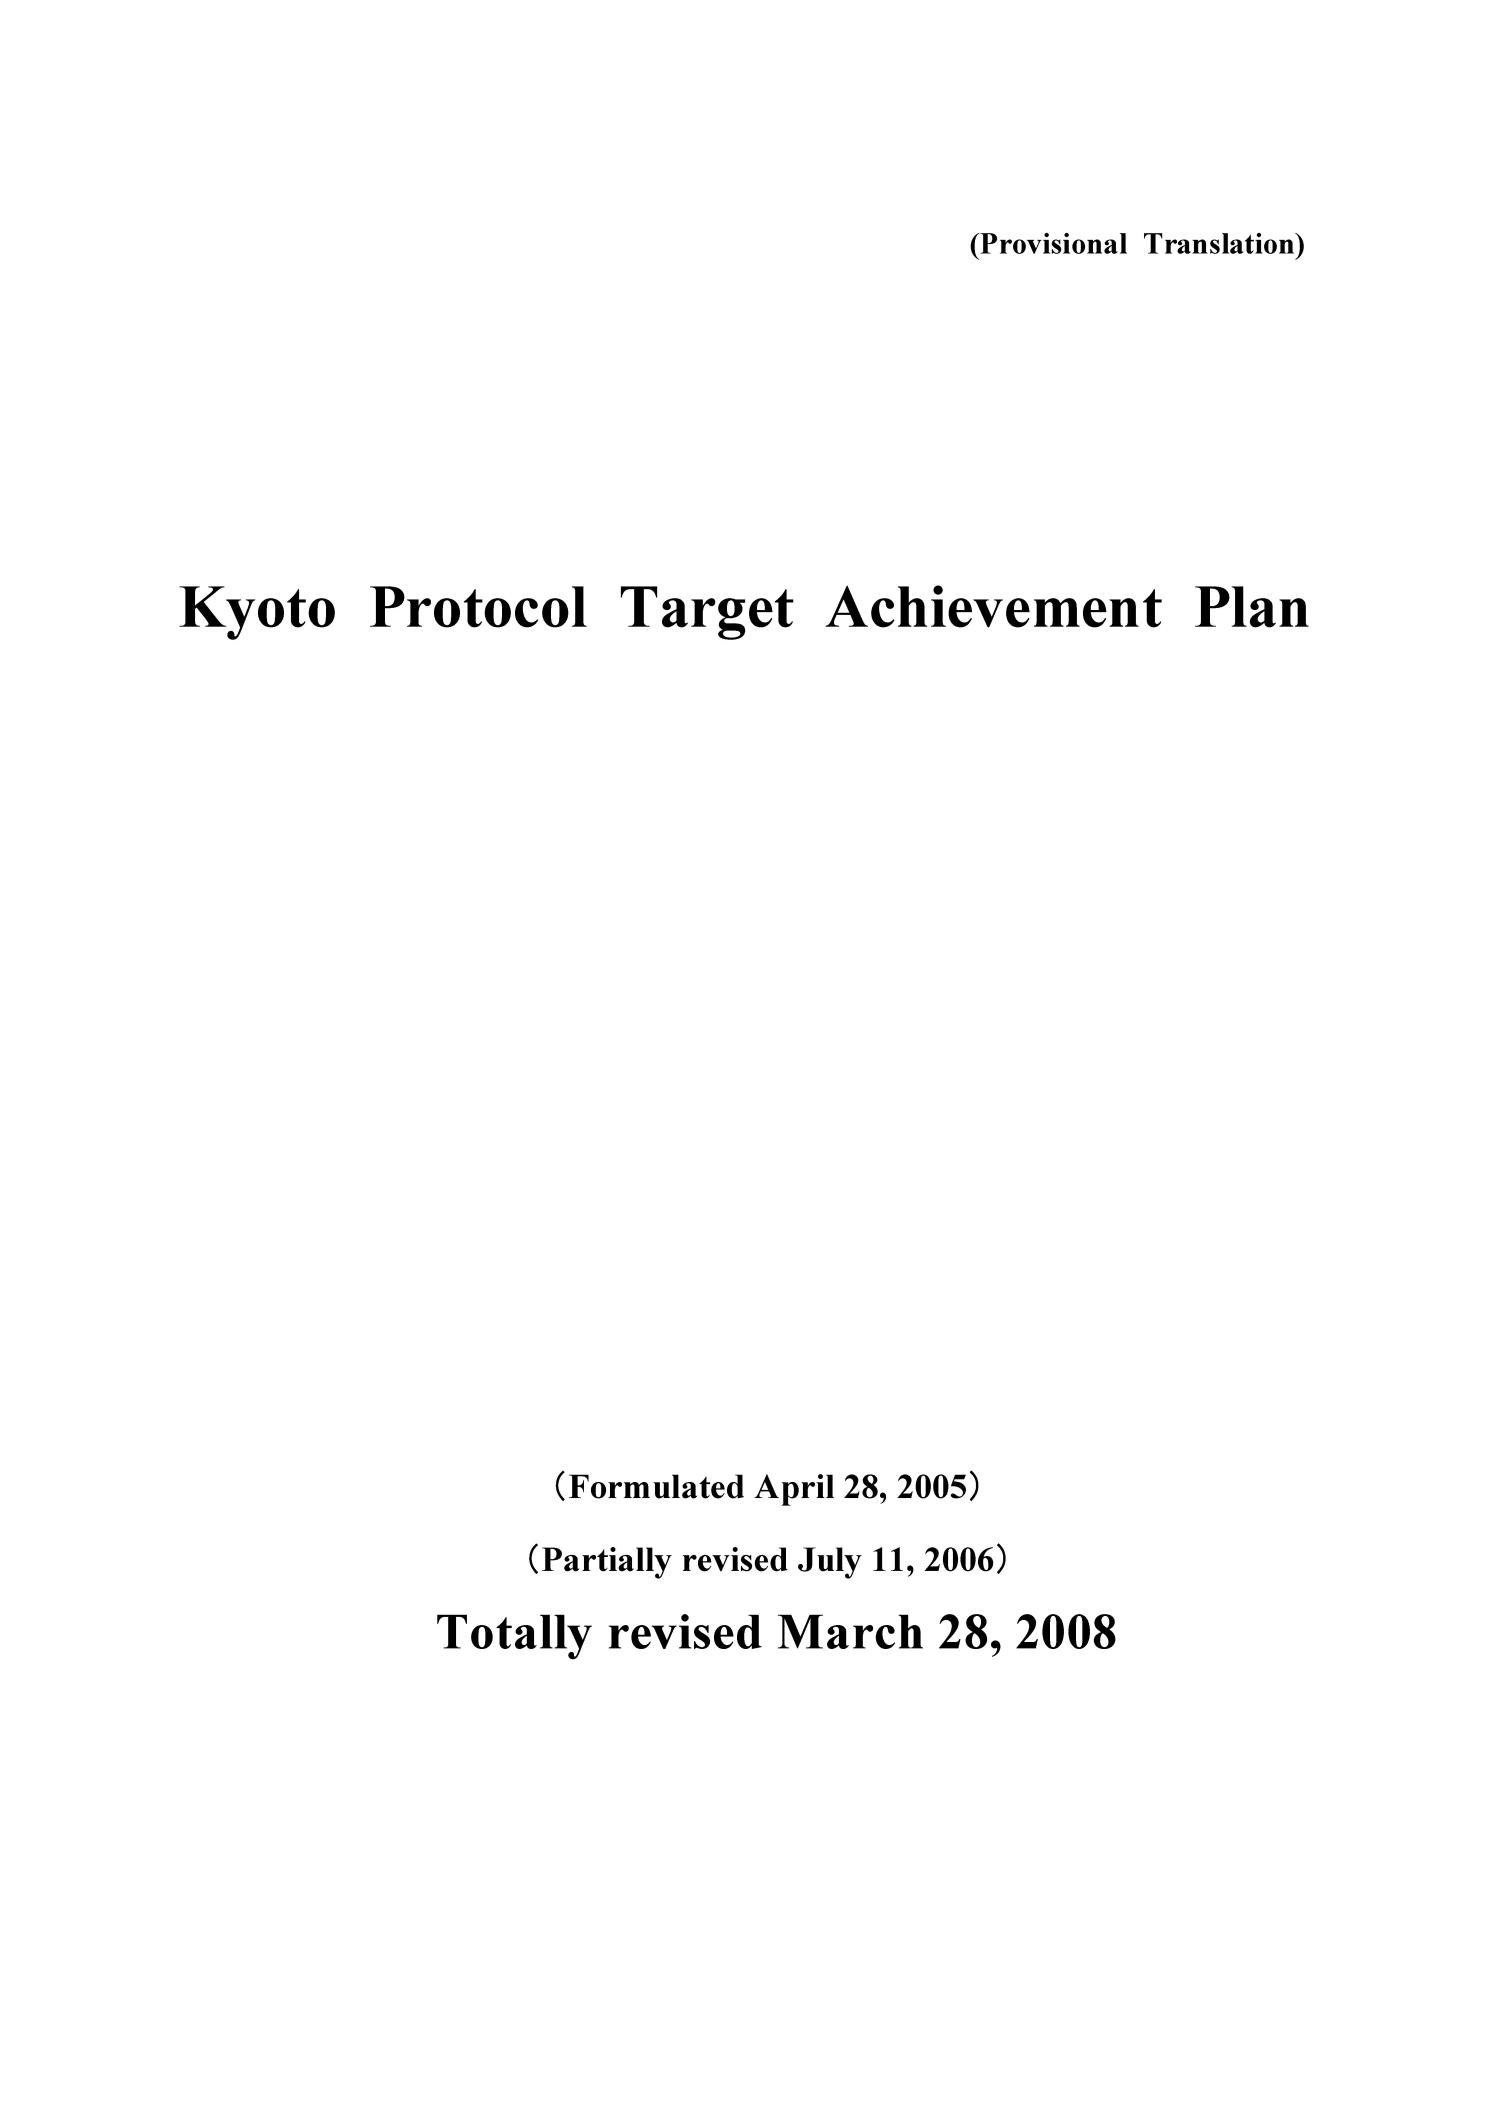 kyoto protocol target achievement plan digital library